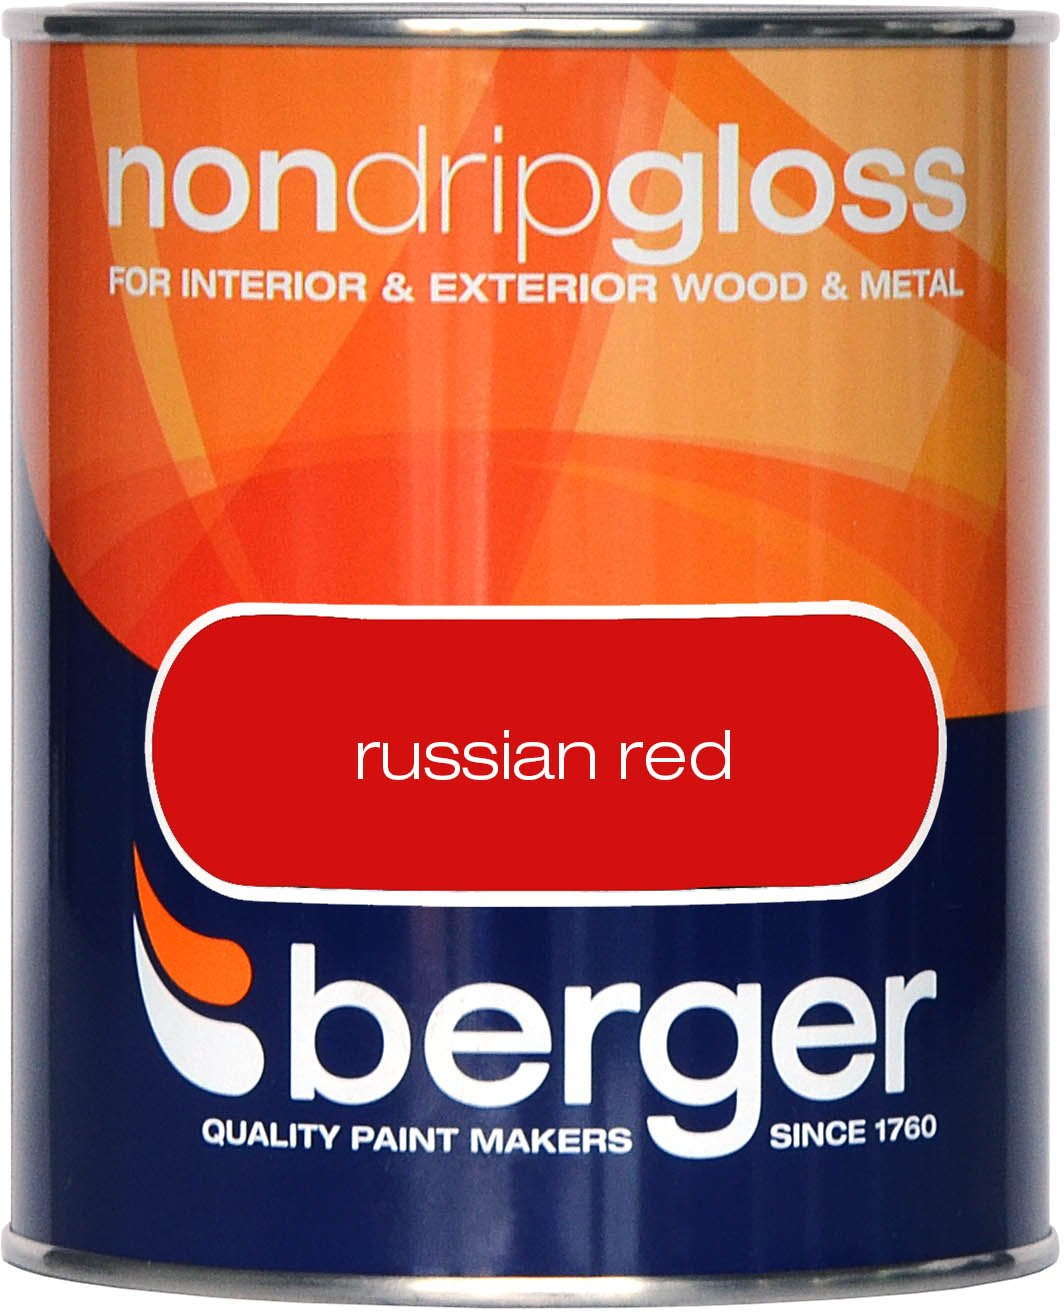 Berger Non Drip Gloss 750ml Russian Red